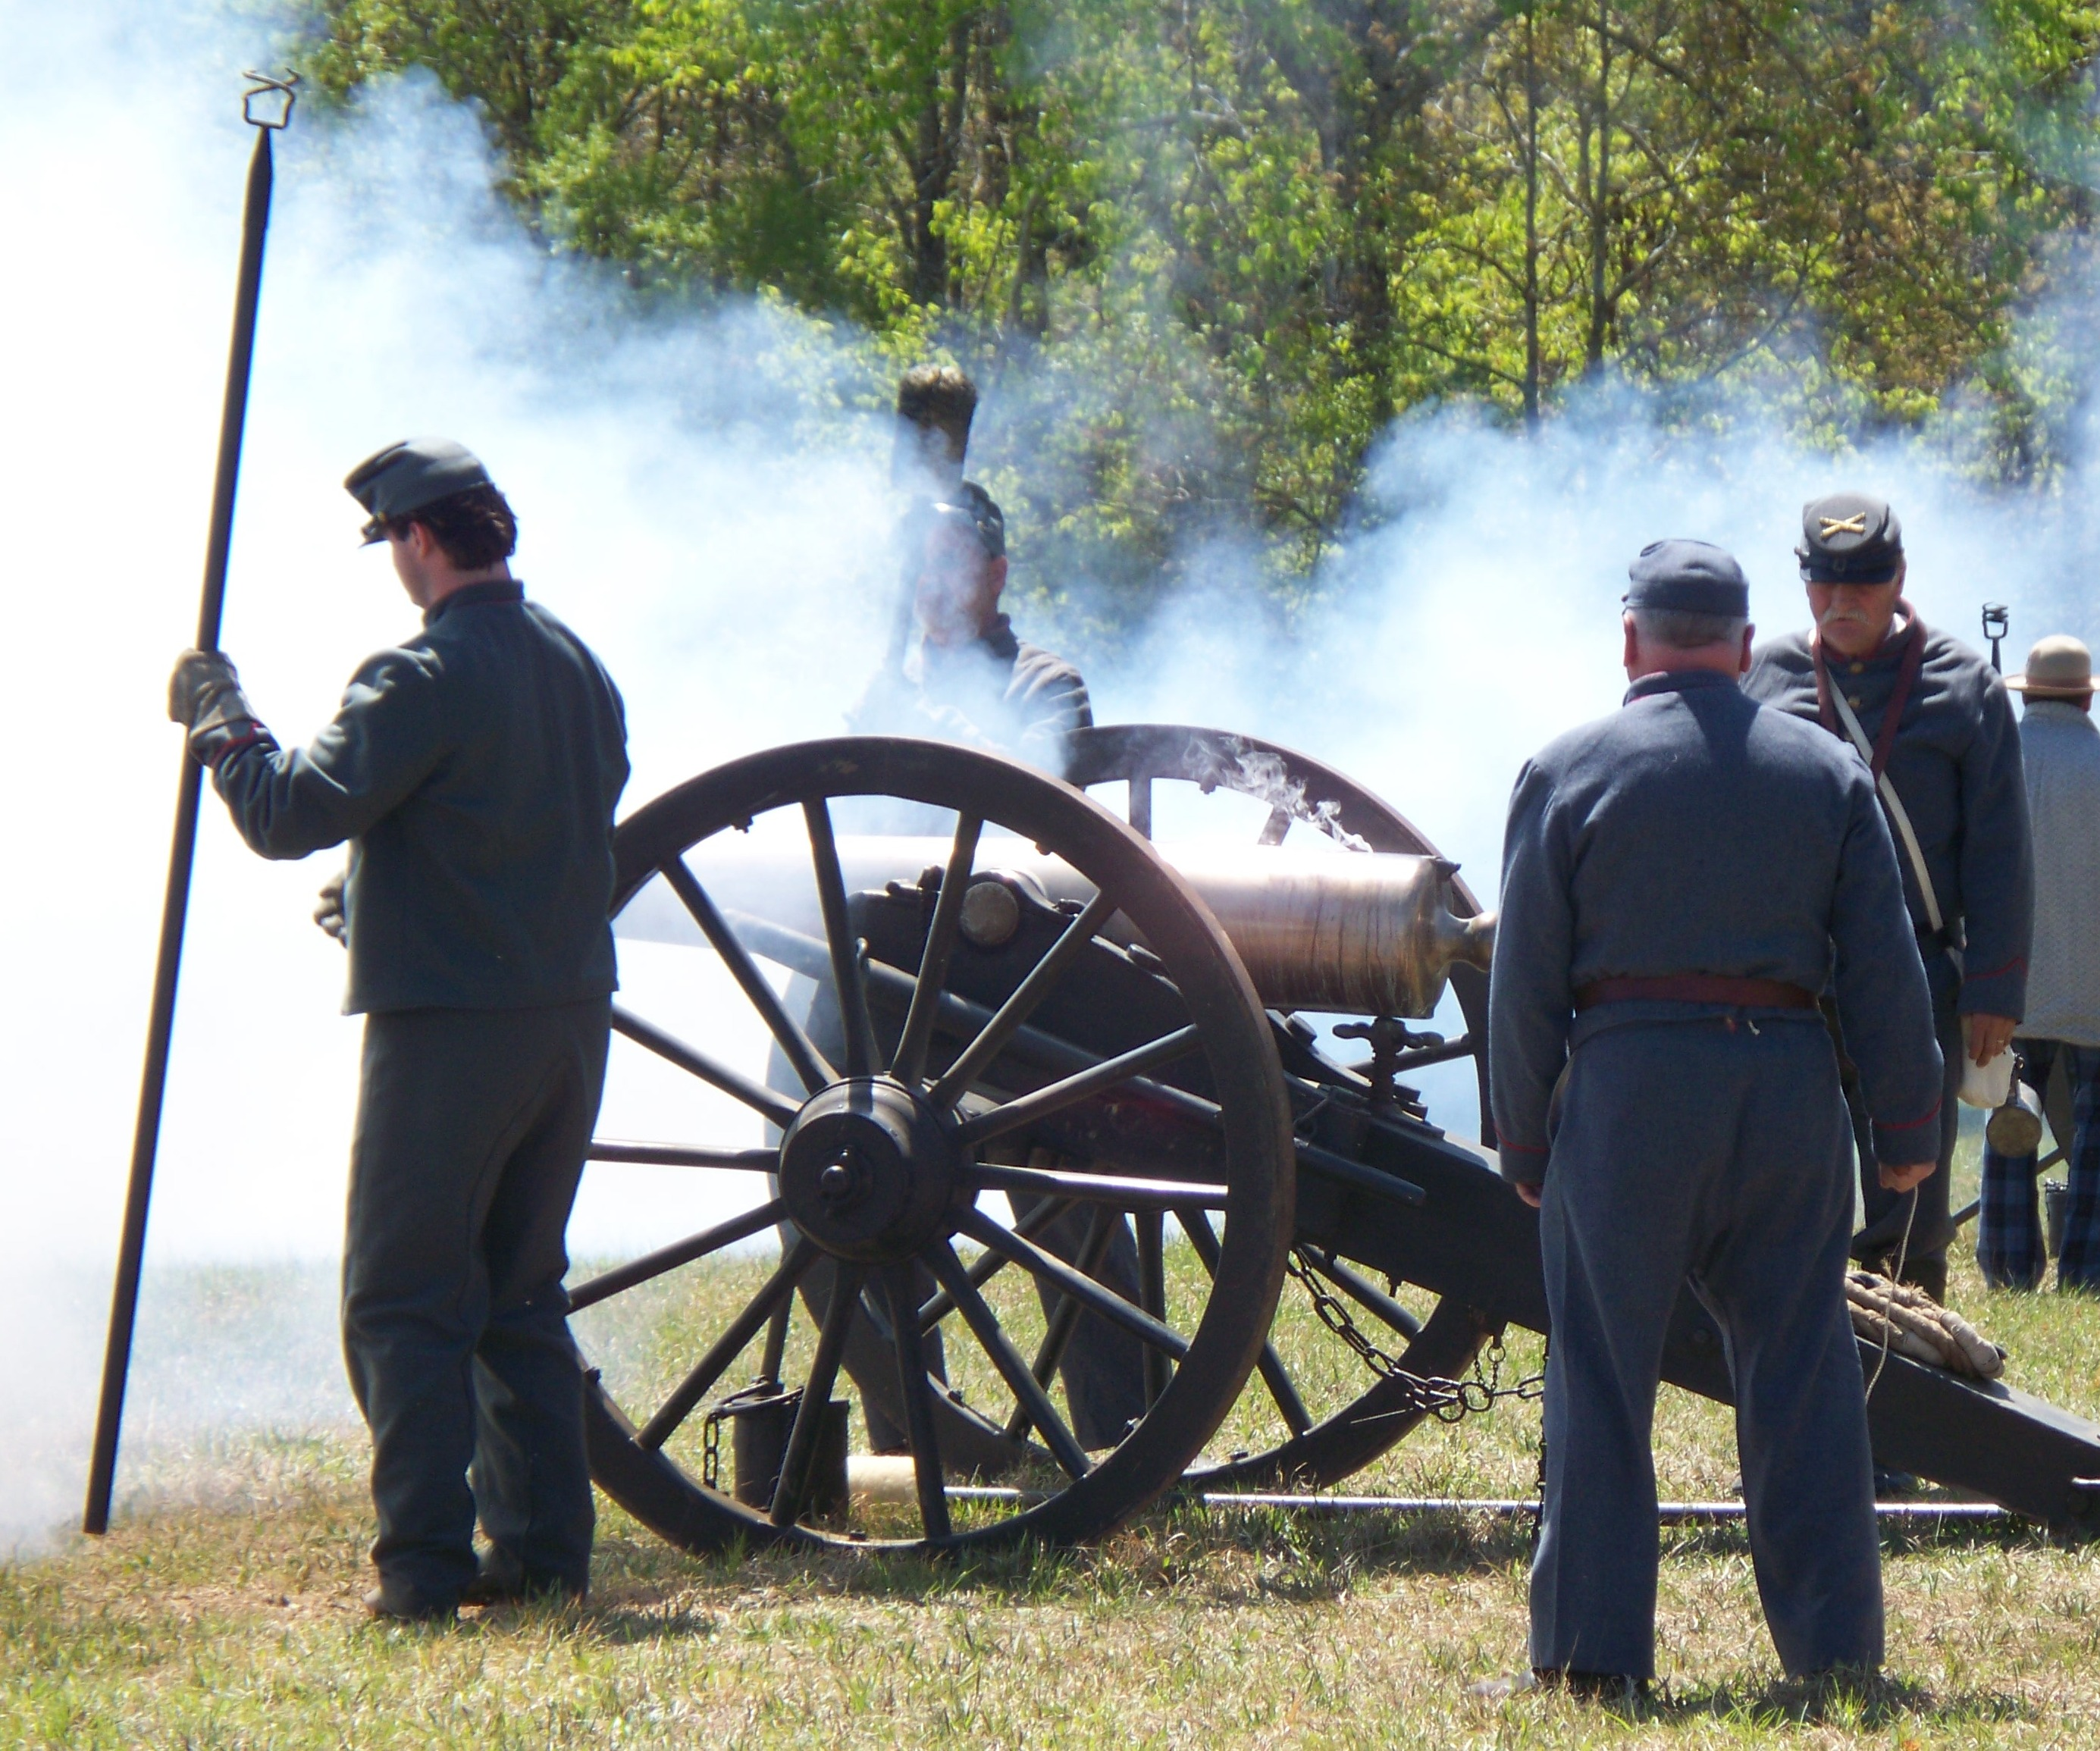 Confederate Artillery Fire - NPS Photo by Chris Mekow